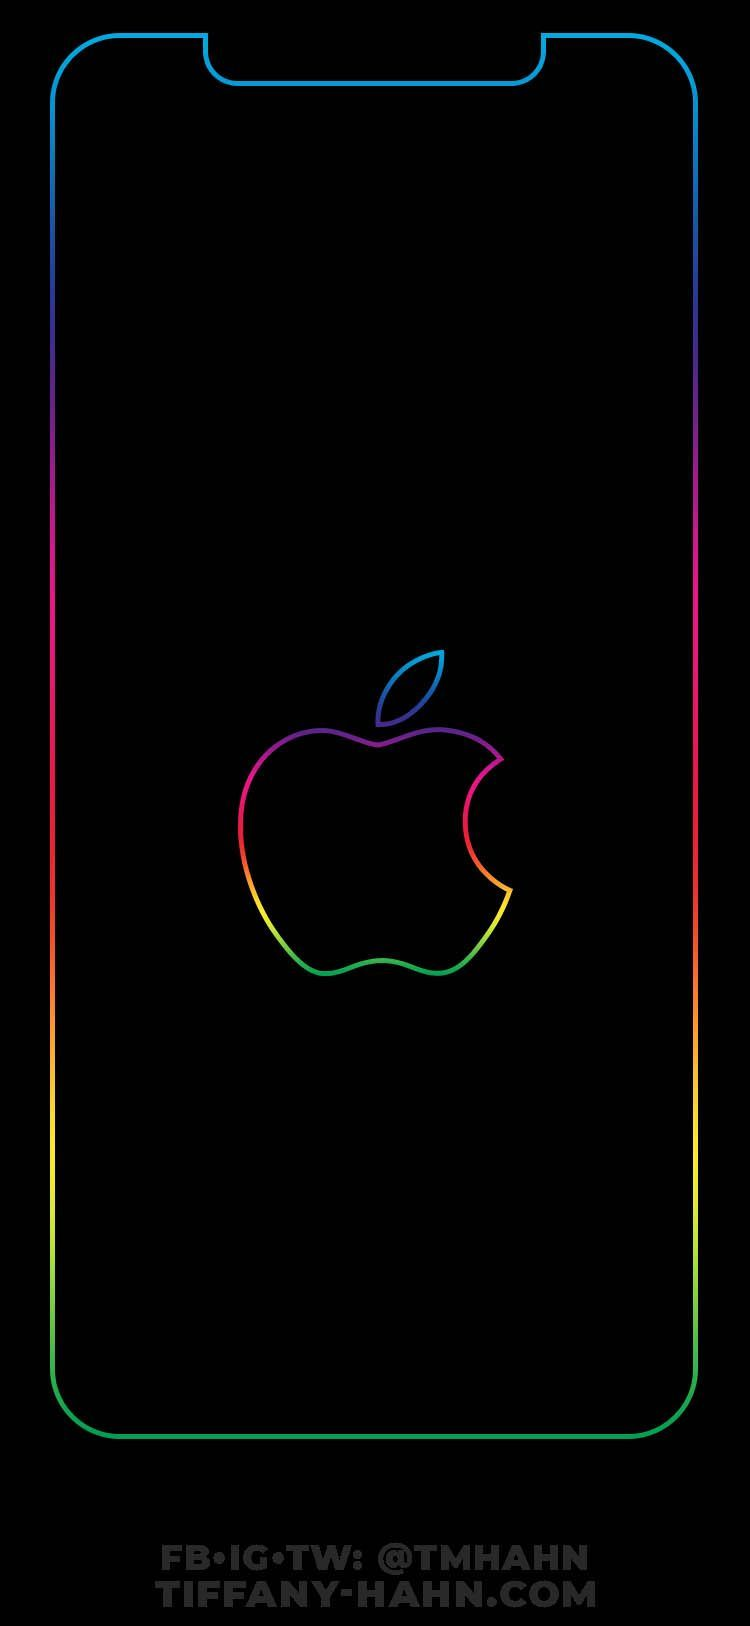 Download Iphone Xs Max Wallpaper Rainbow Rainbow Wallpaper Iphone Wallpaper Iphone Neon Galaxy Wallpaper Iphone